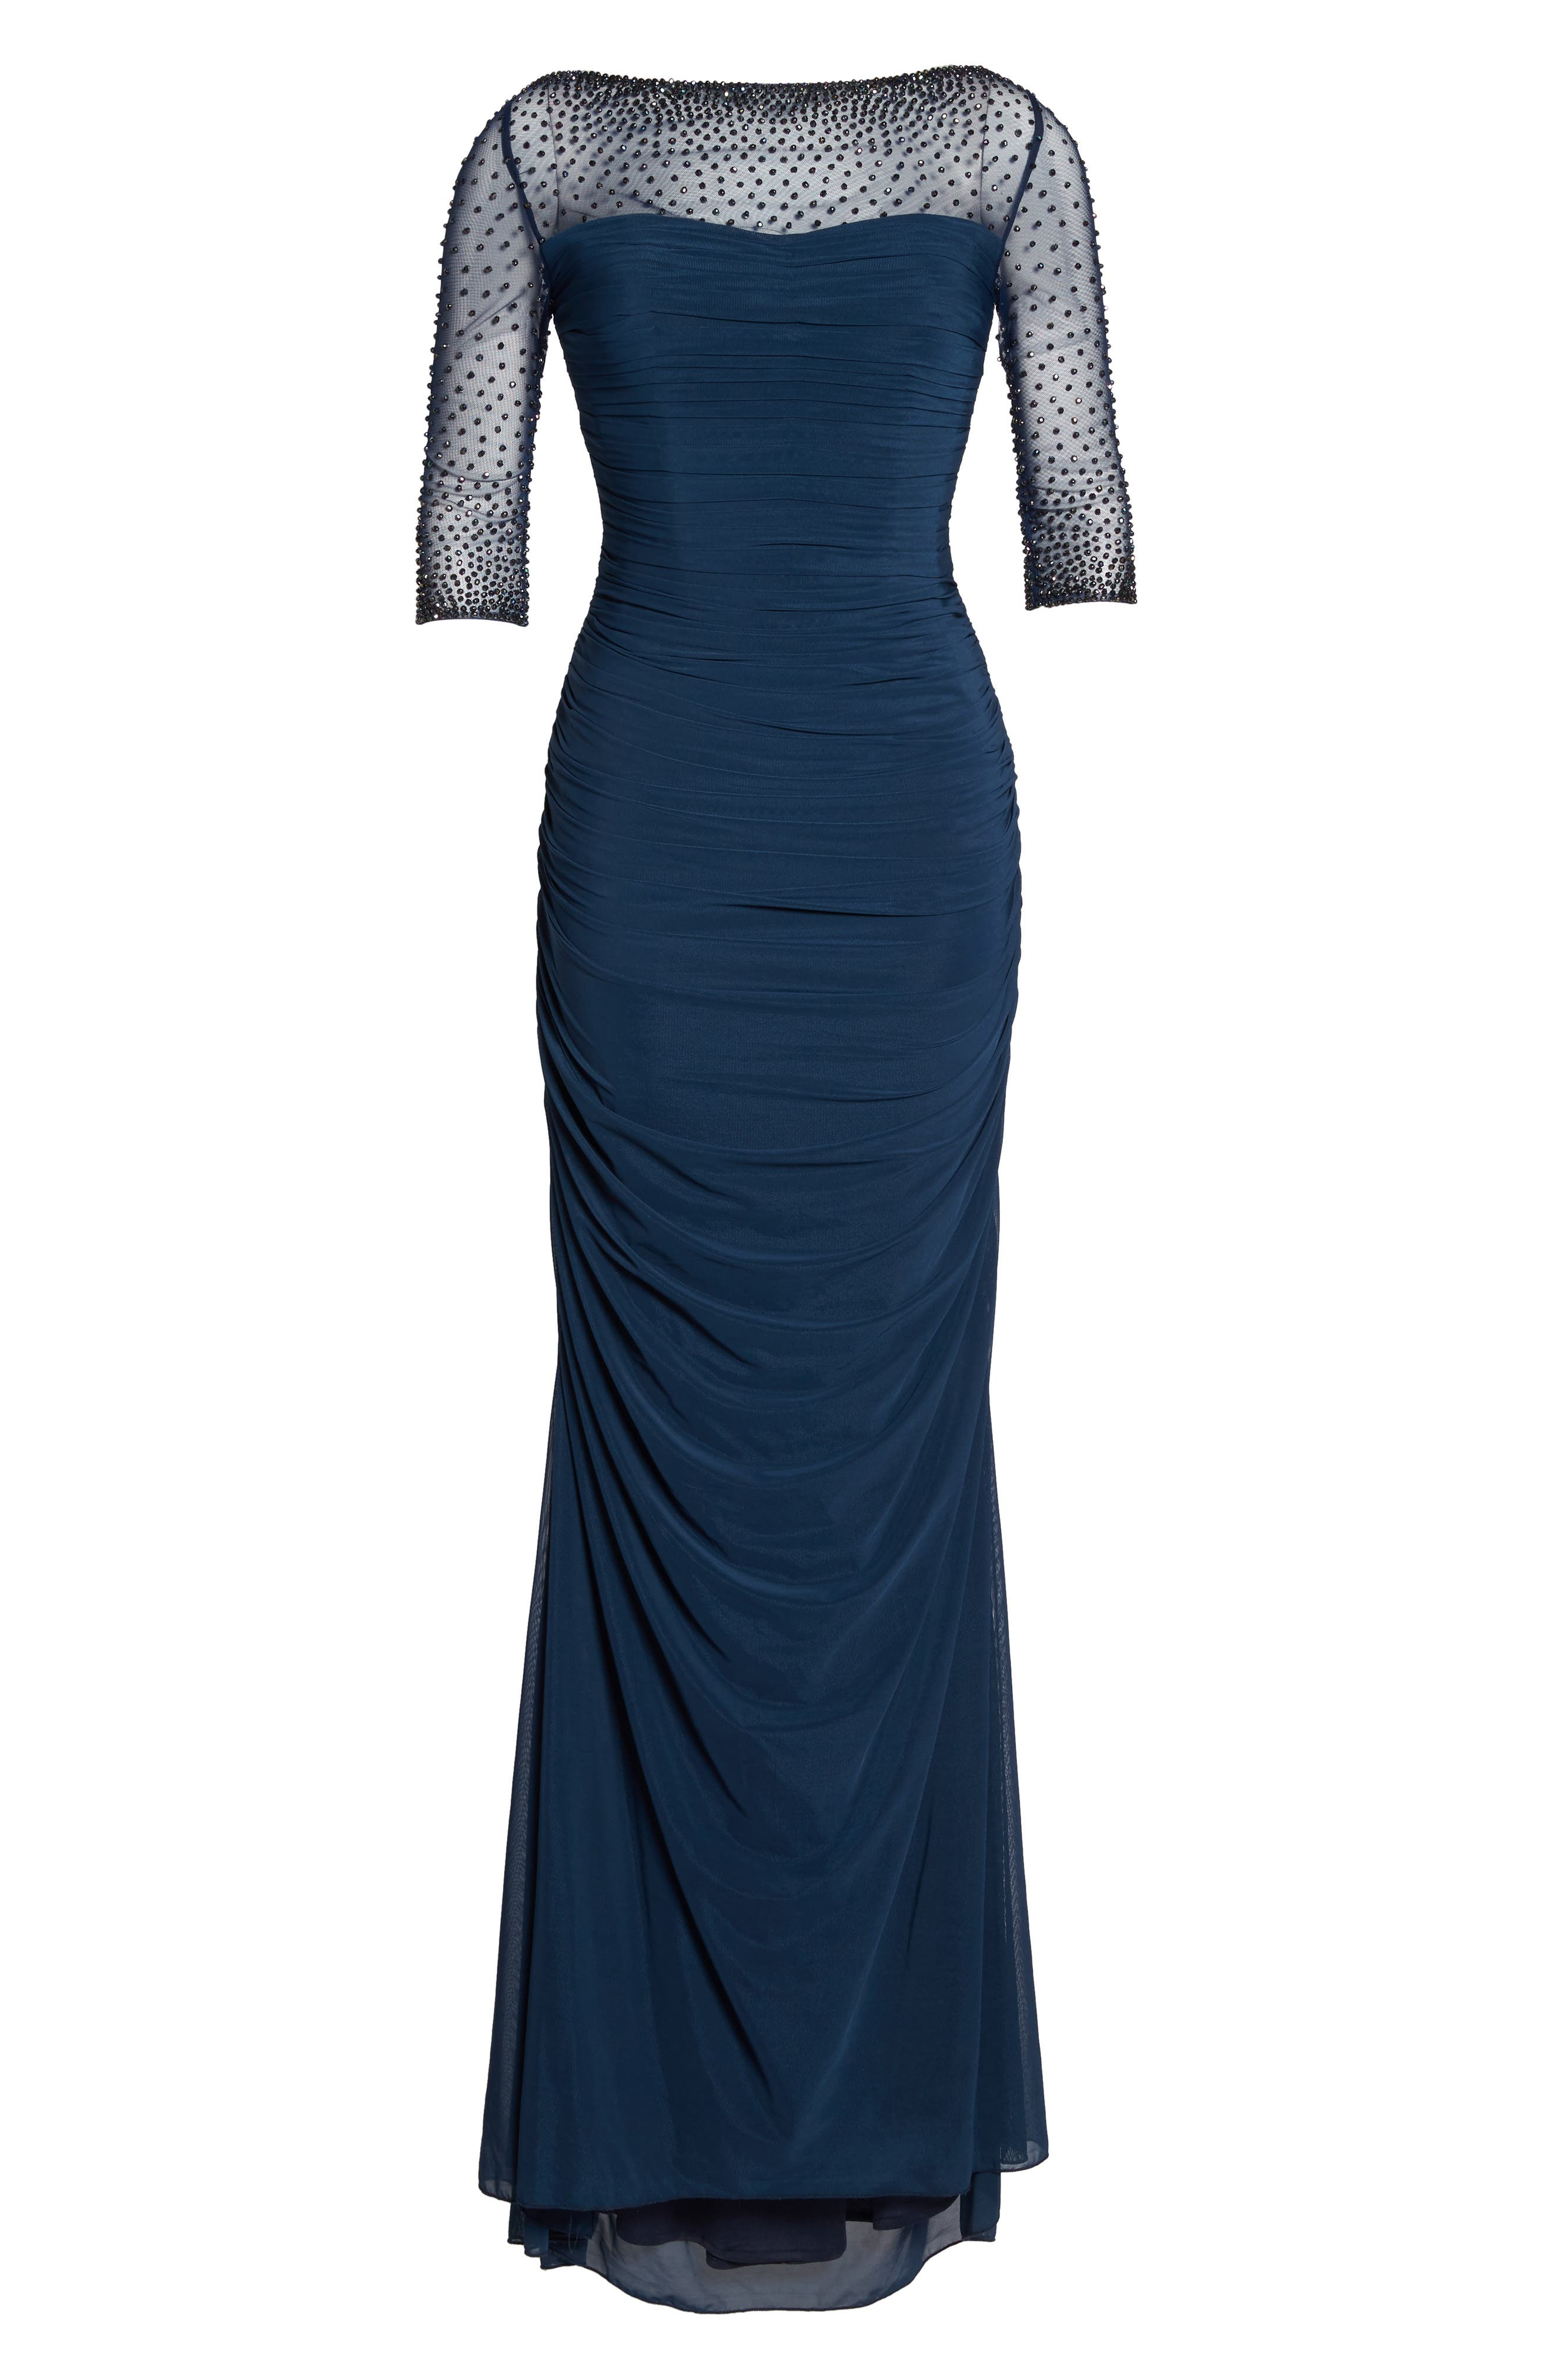 Embellished Mesh Ruched Jersey Gown,                             Alternate thumbnail 6, color,                             NAVY